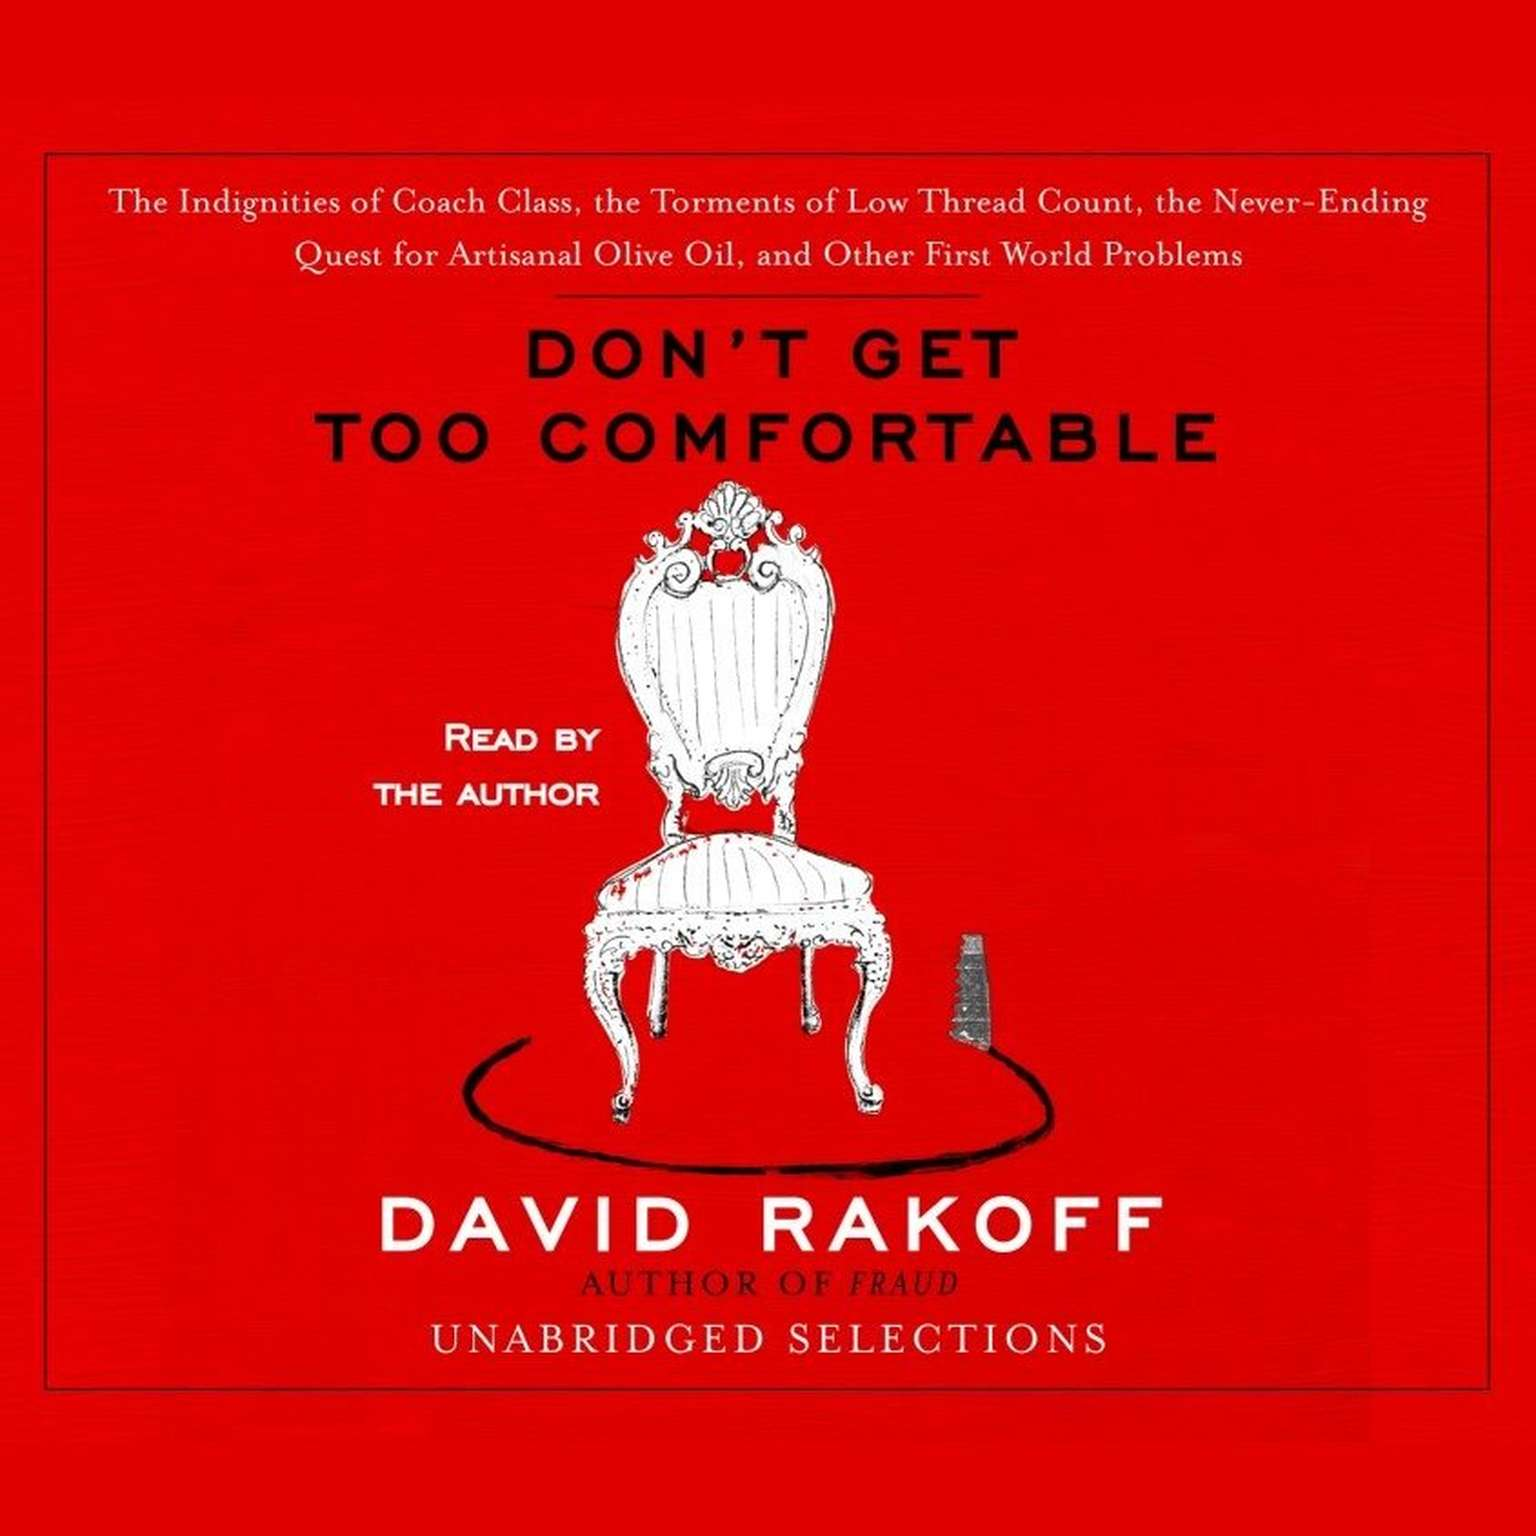 Printable Don't Get Too Comfortable: The Indignities of Coach Class, The Torments of Low Thread Count, The Never- Ending Quest for Artisanal Olive Oil, and Other First World Problems Audiobook Cover Art